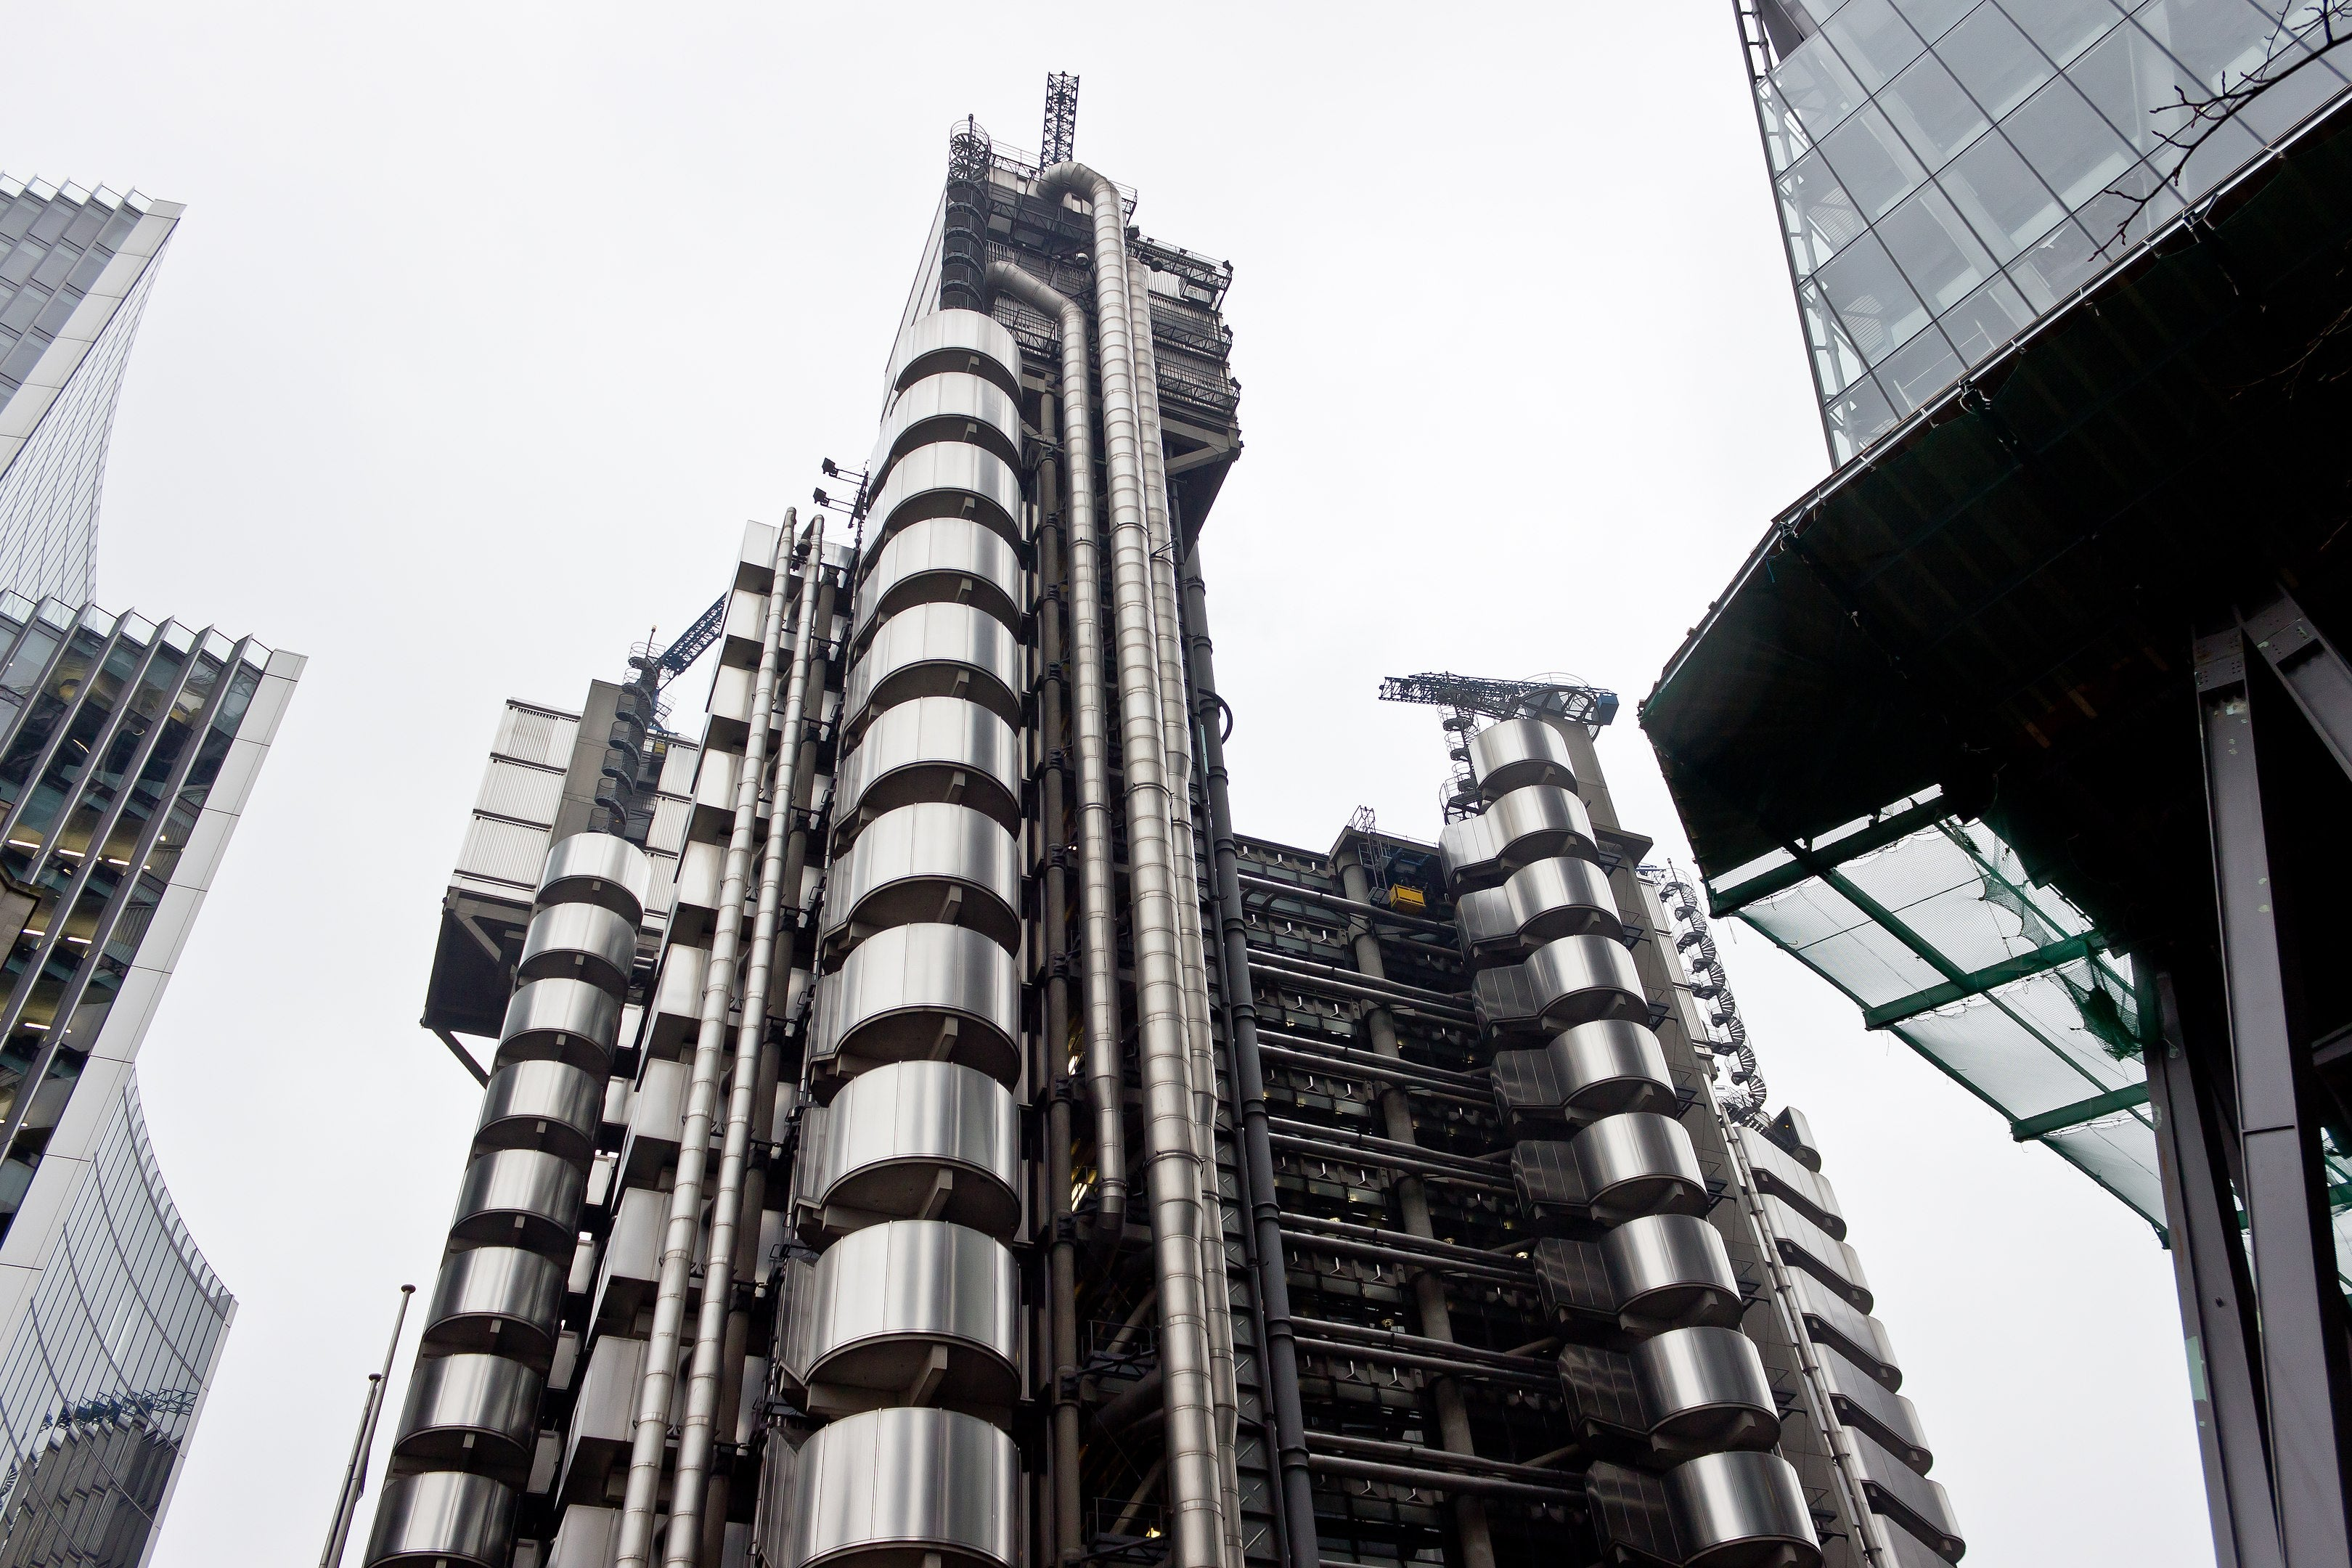 Lloyd's building in London designed by Richard Rogers exterior with exposed metal work and spirals for A Collected Man London